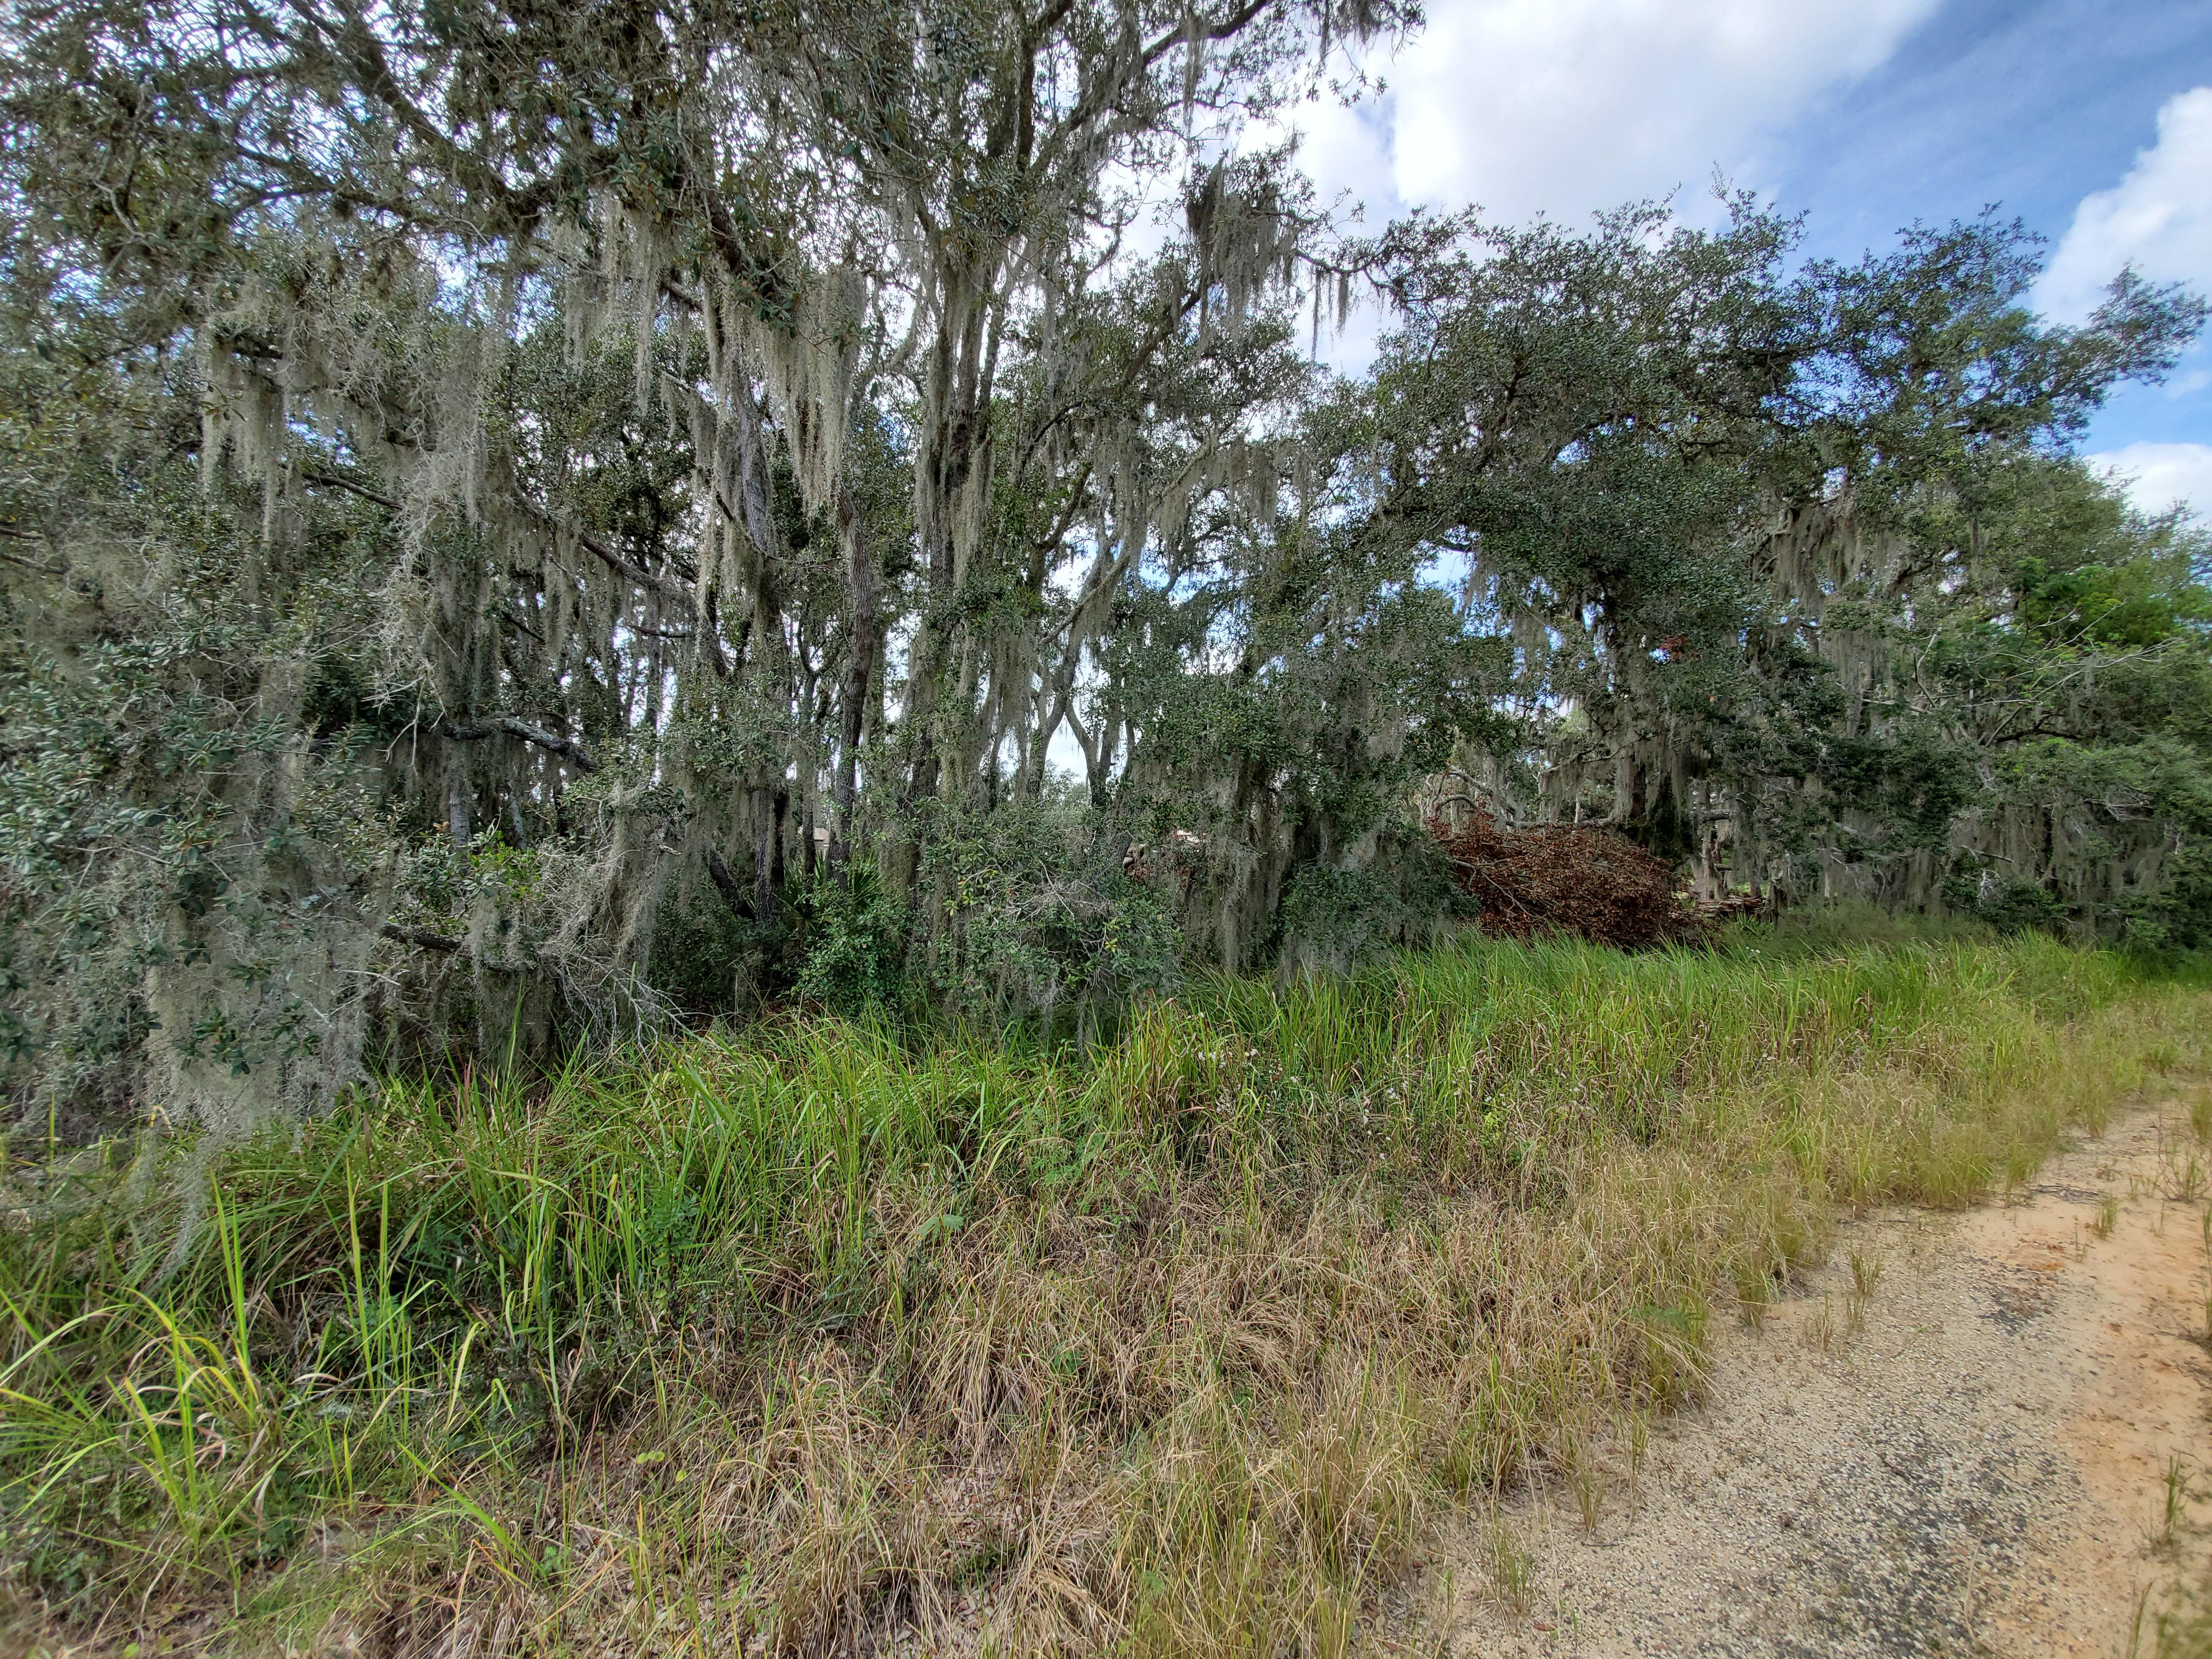 Residential Lot Close to Lake Olivia - Image 4